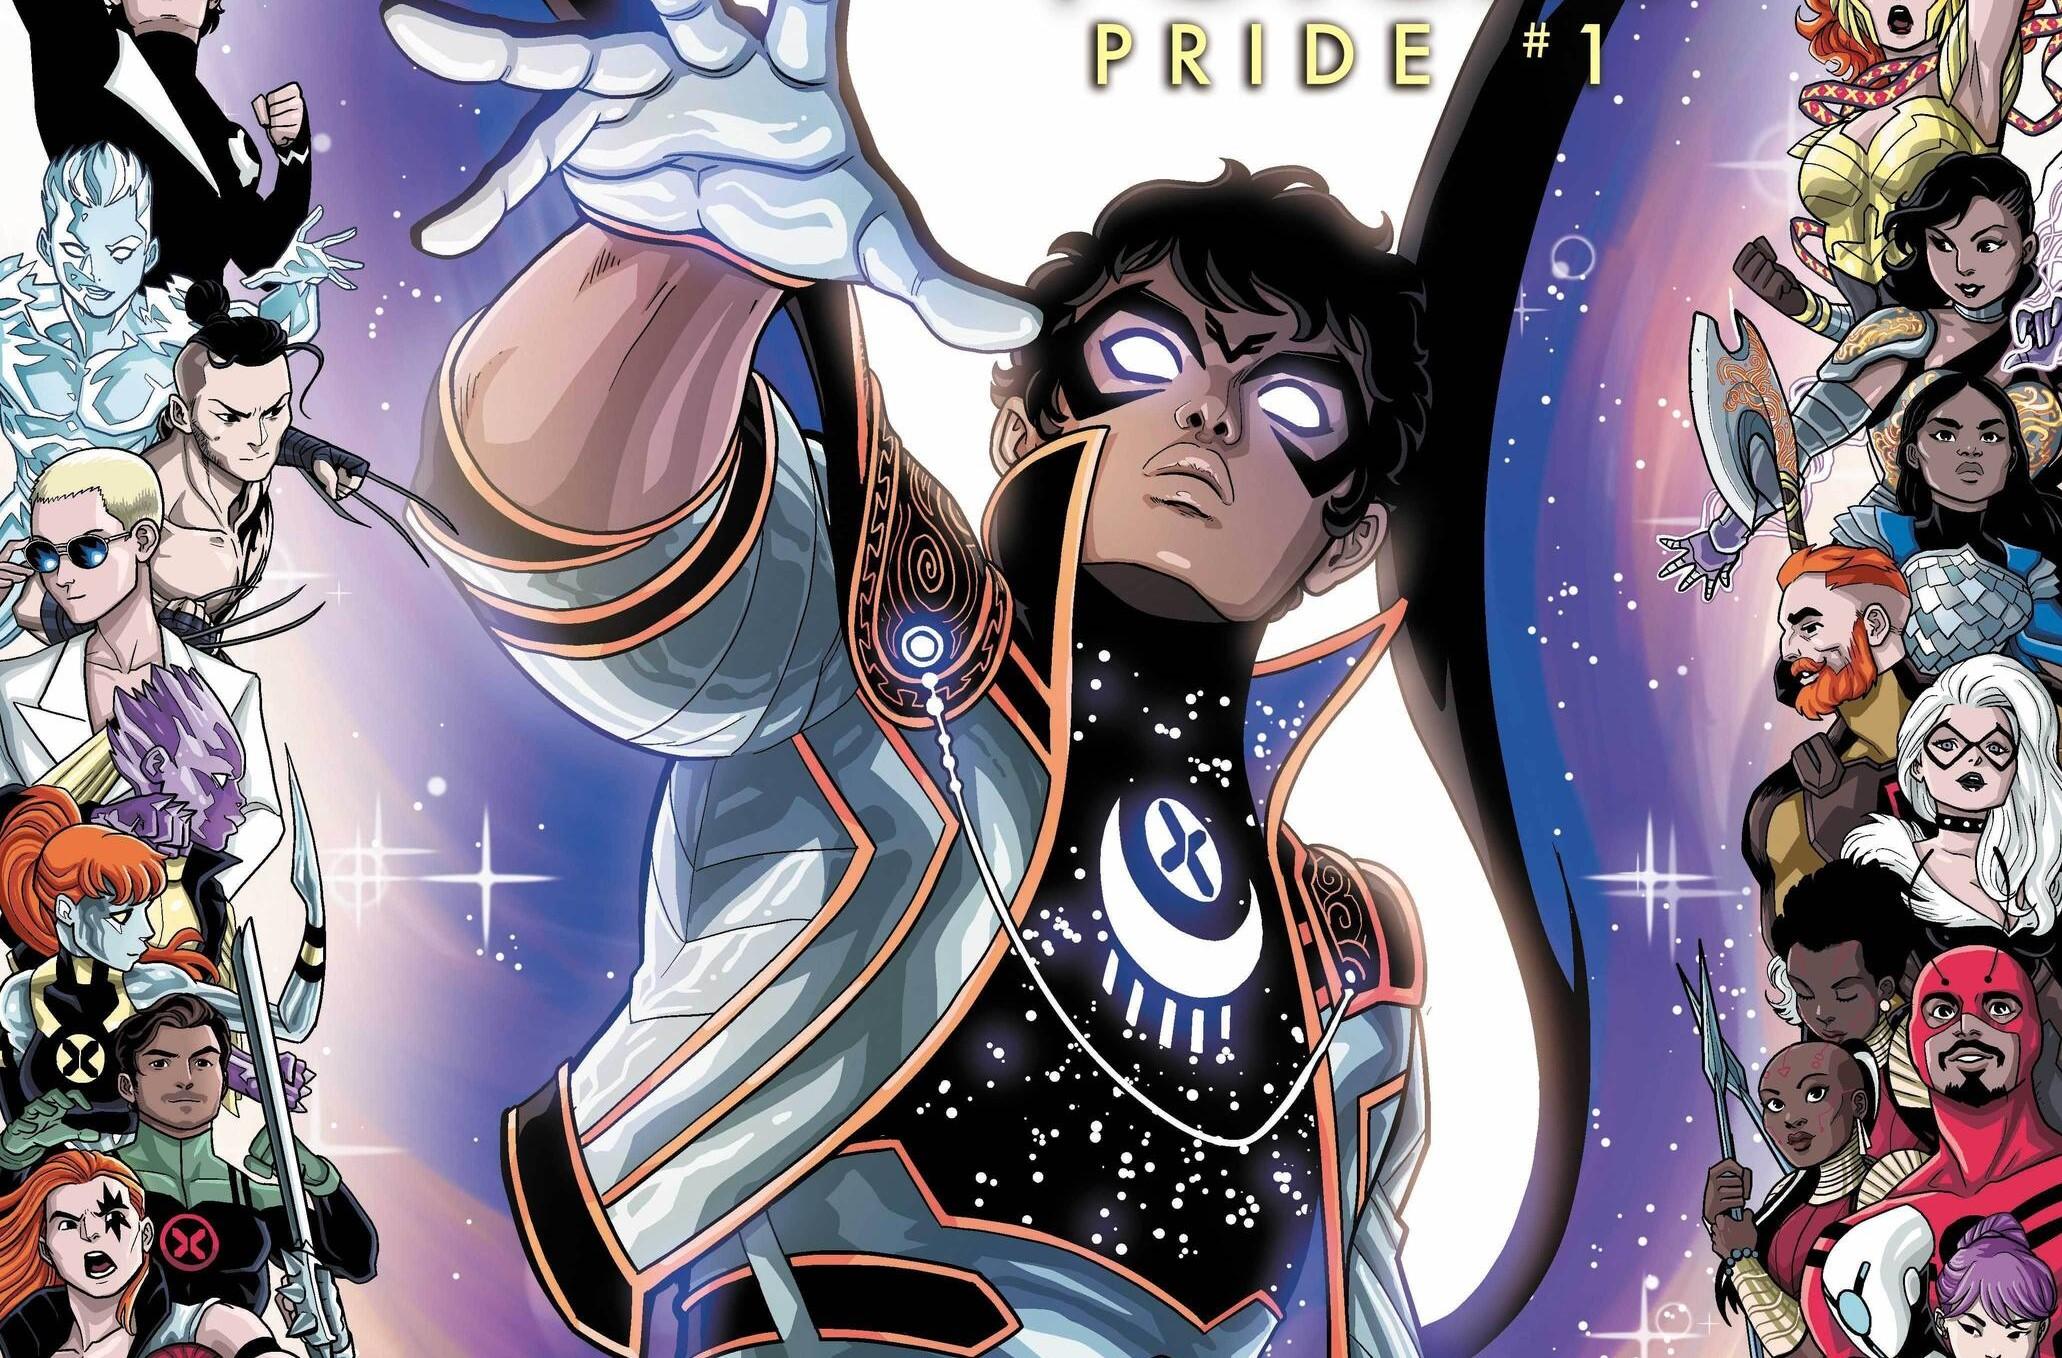 Somnus and a lineup of queer Marvel characters